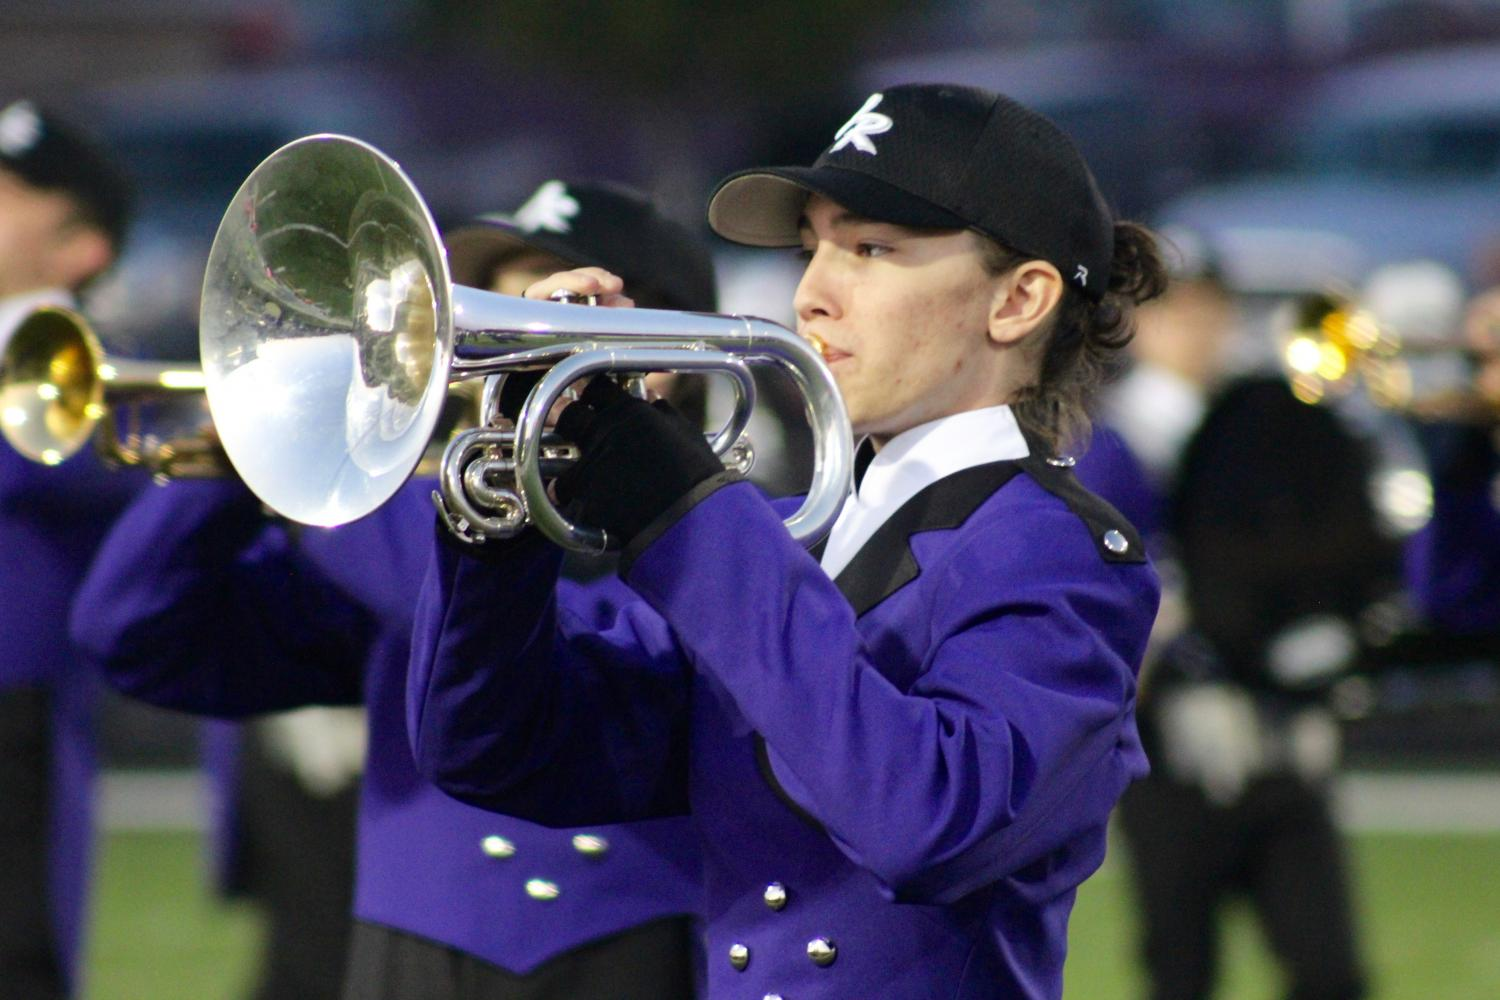 Panther Regiment and dance team keep halftime hopes alive (gallery)